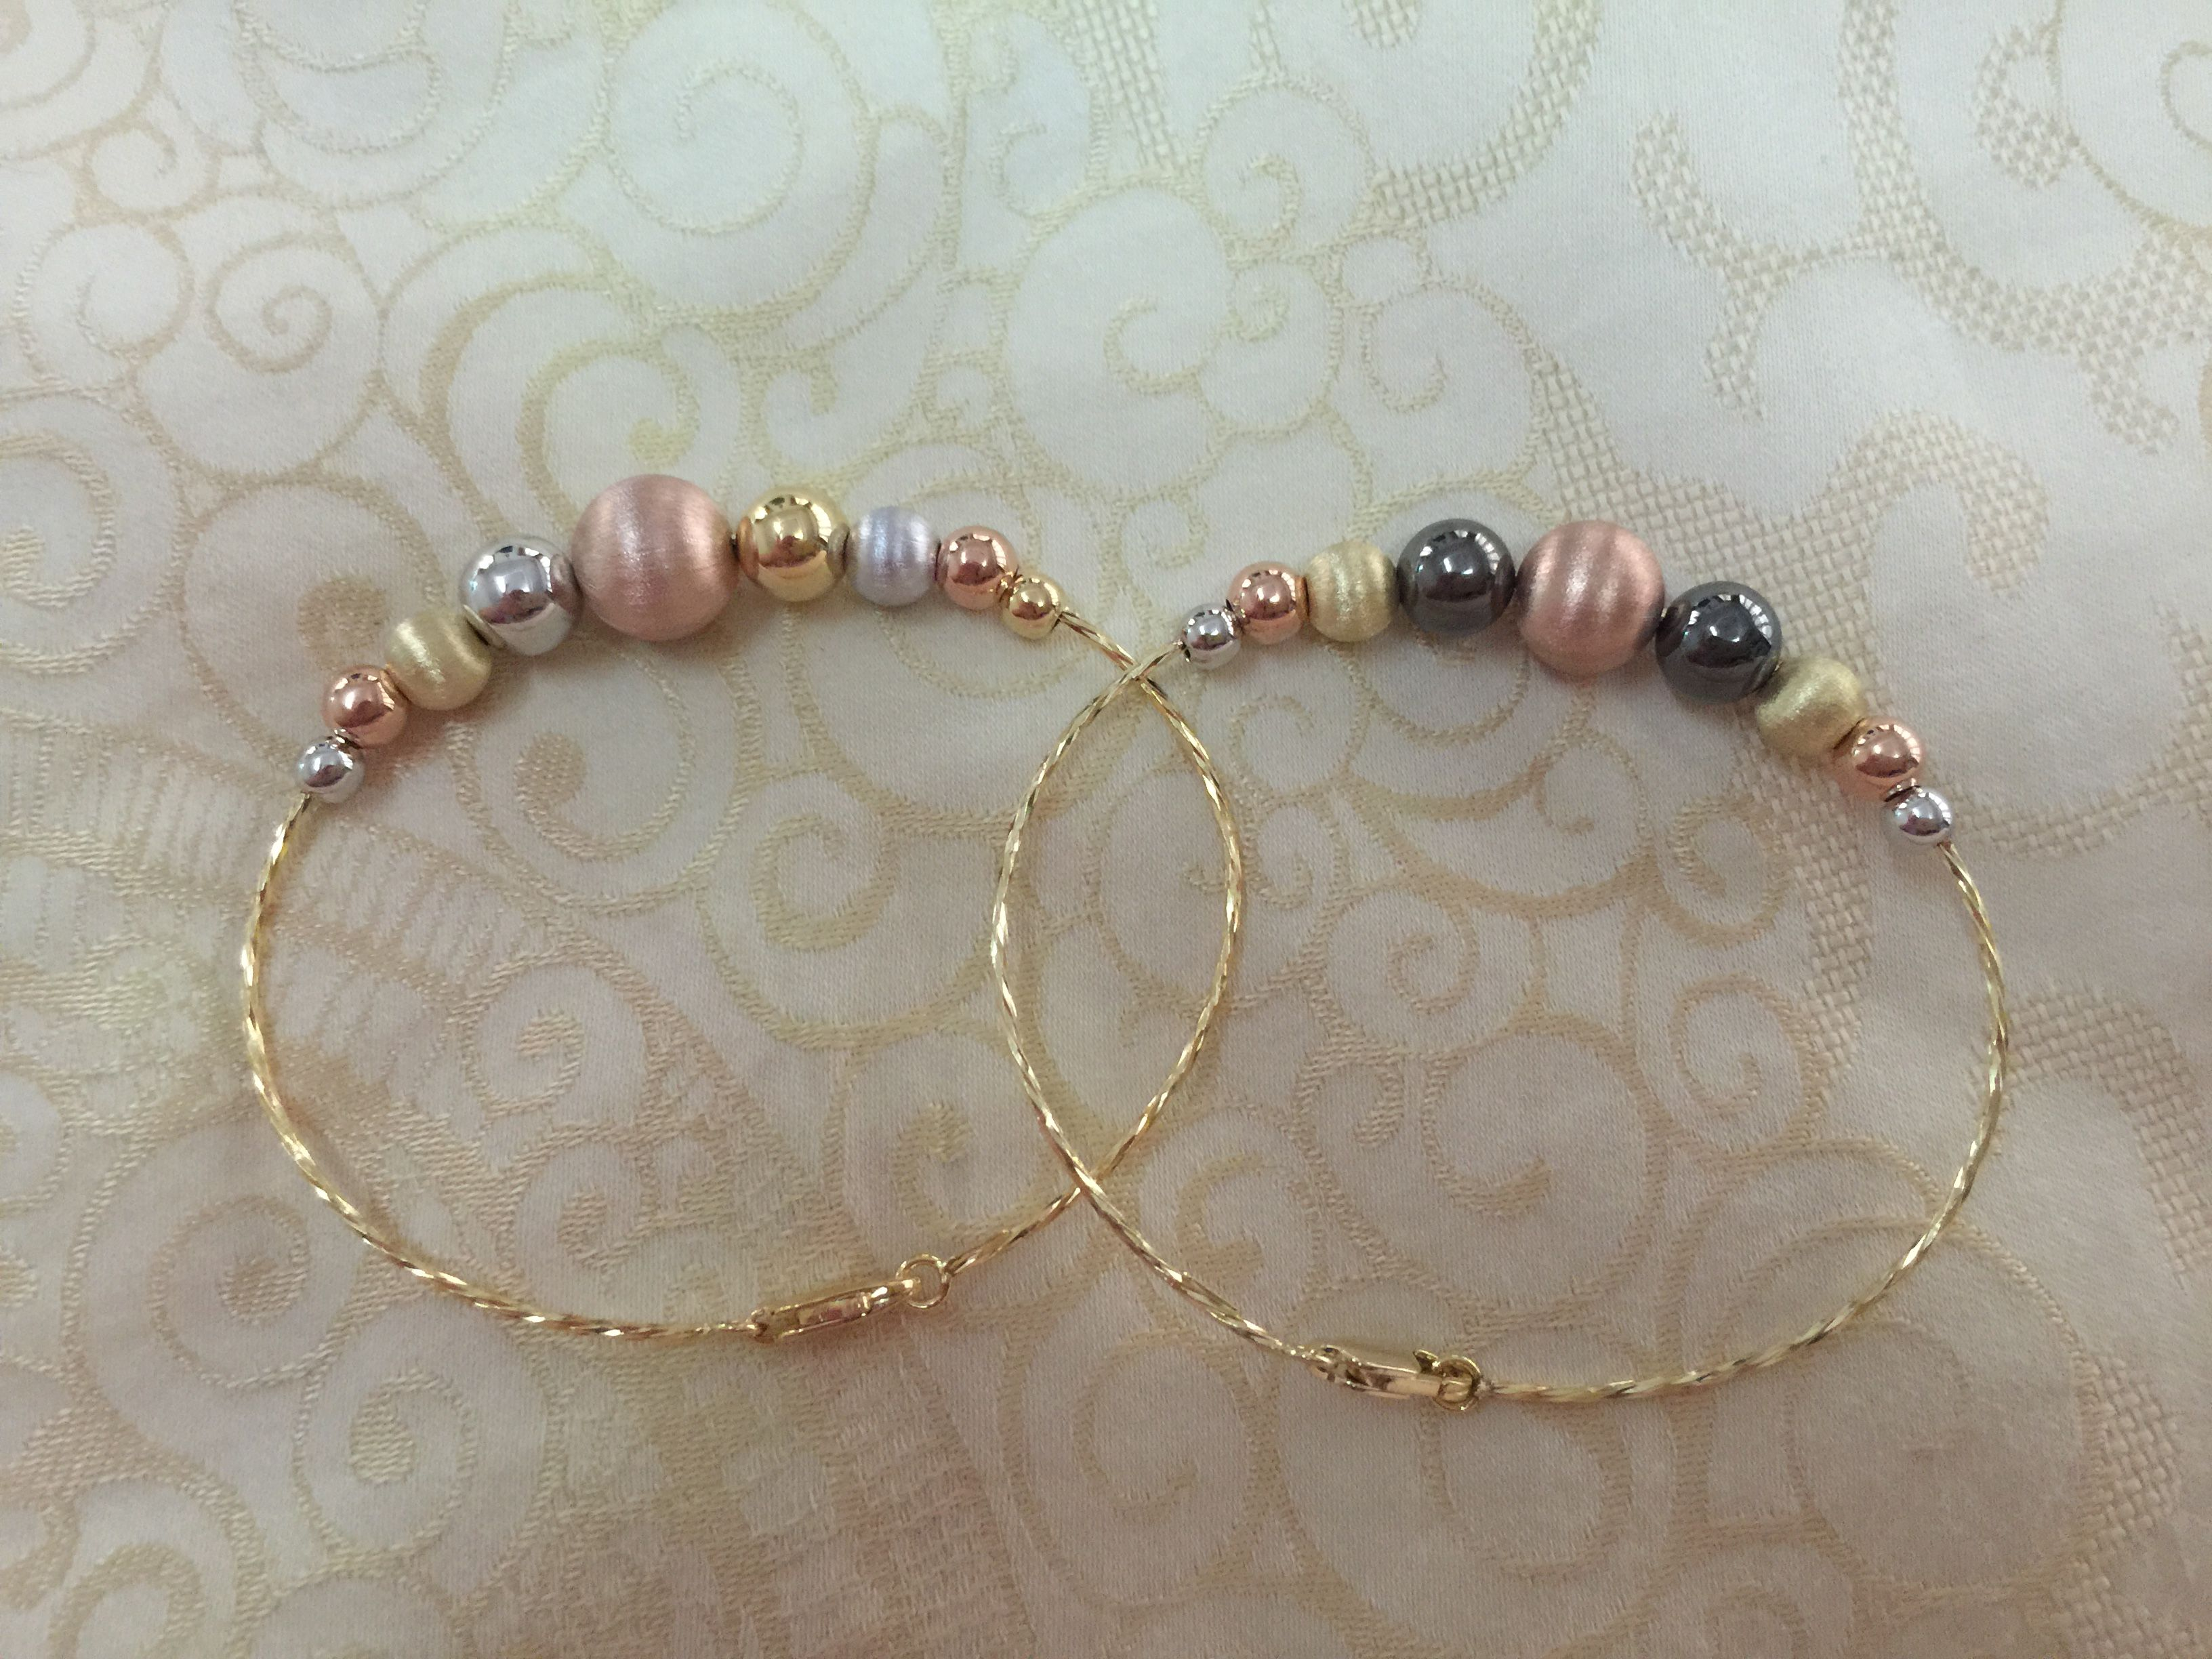 bracelet bangle bangles the in members on rose are loveliest a and moon captured pin sun of sphere cosmos gold stars